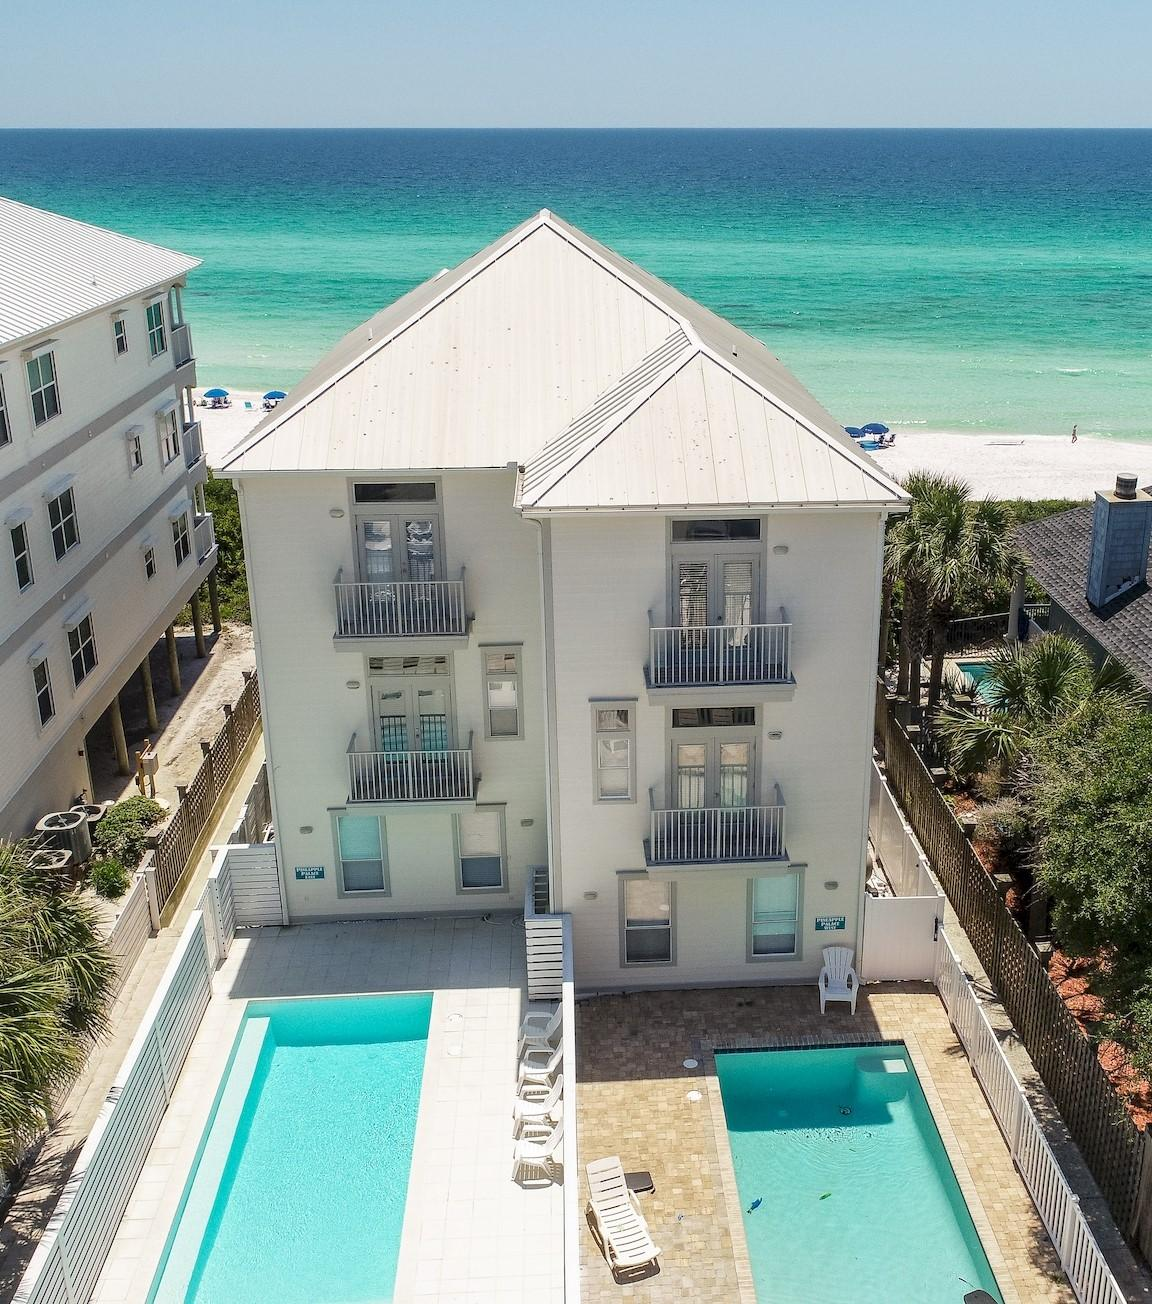 4256 E CO HIGHWAY 30-A #UNIT B, SANTA ROSA BEACH, FL 32459